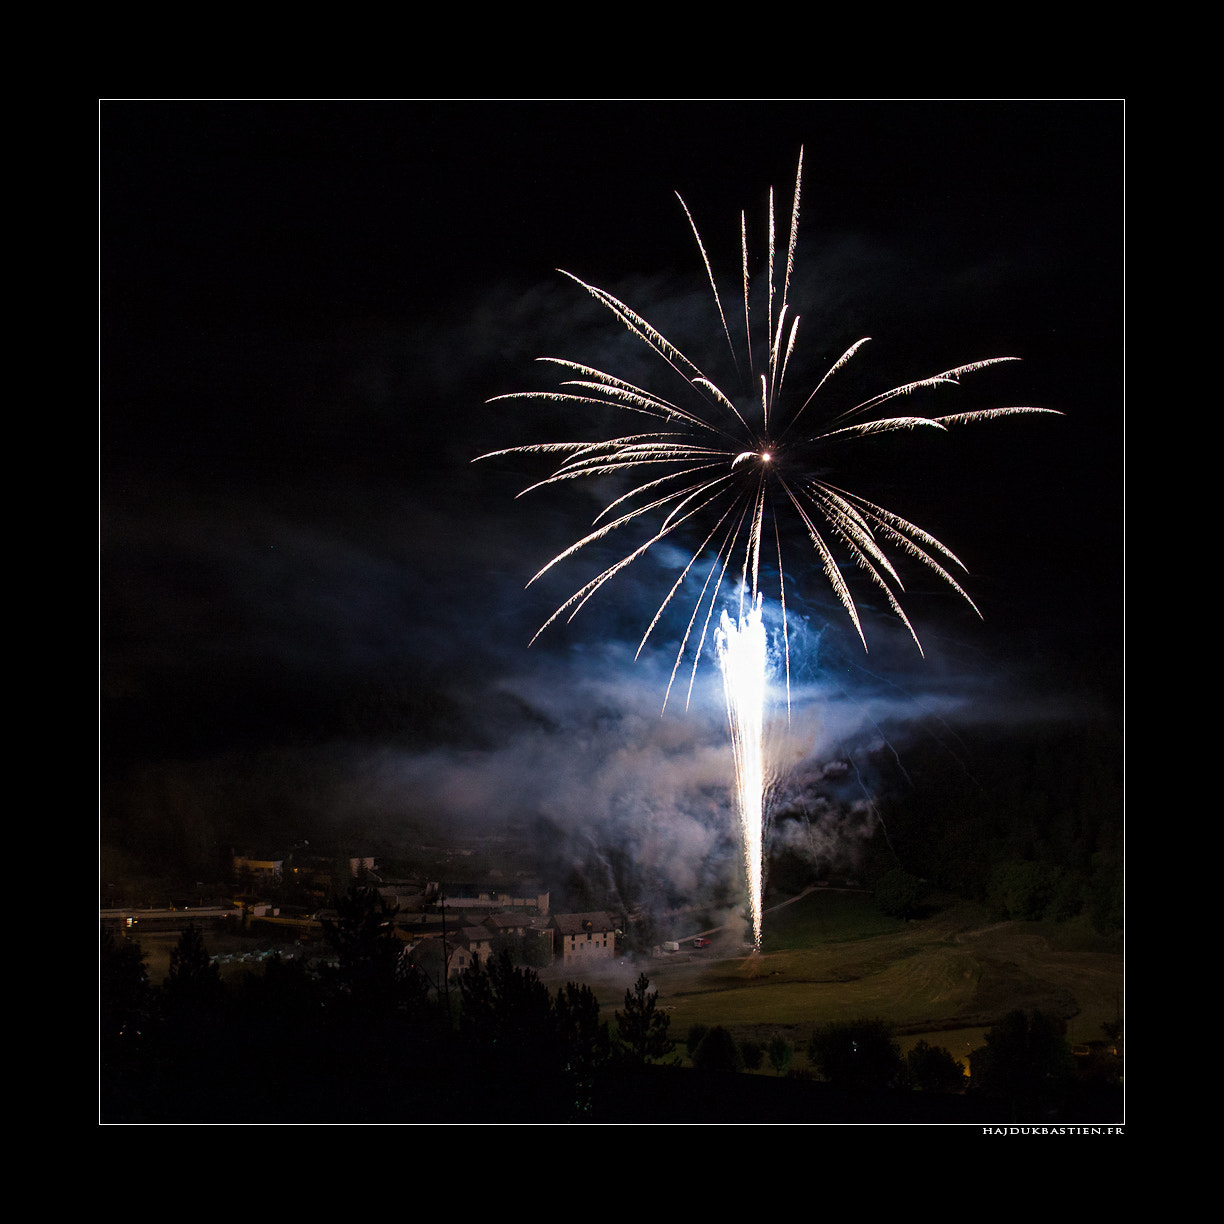 Photograph 14 juillet by Bastien HAJDUK on 500px